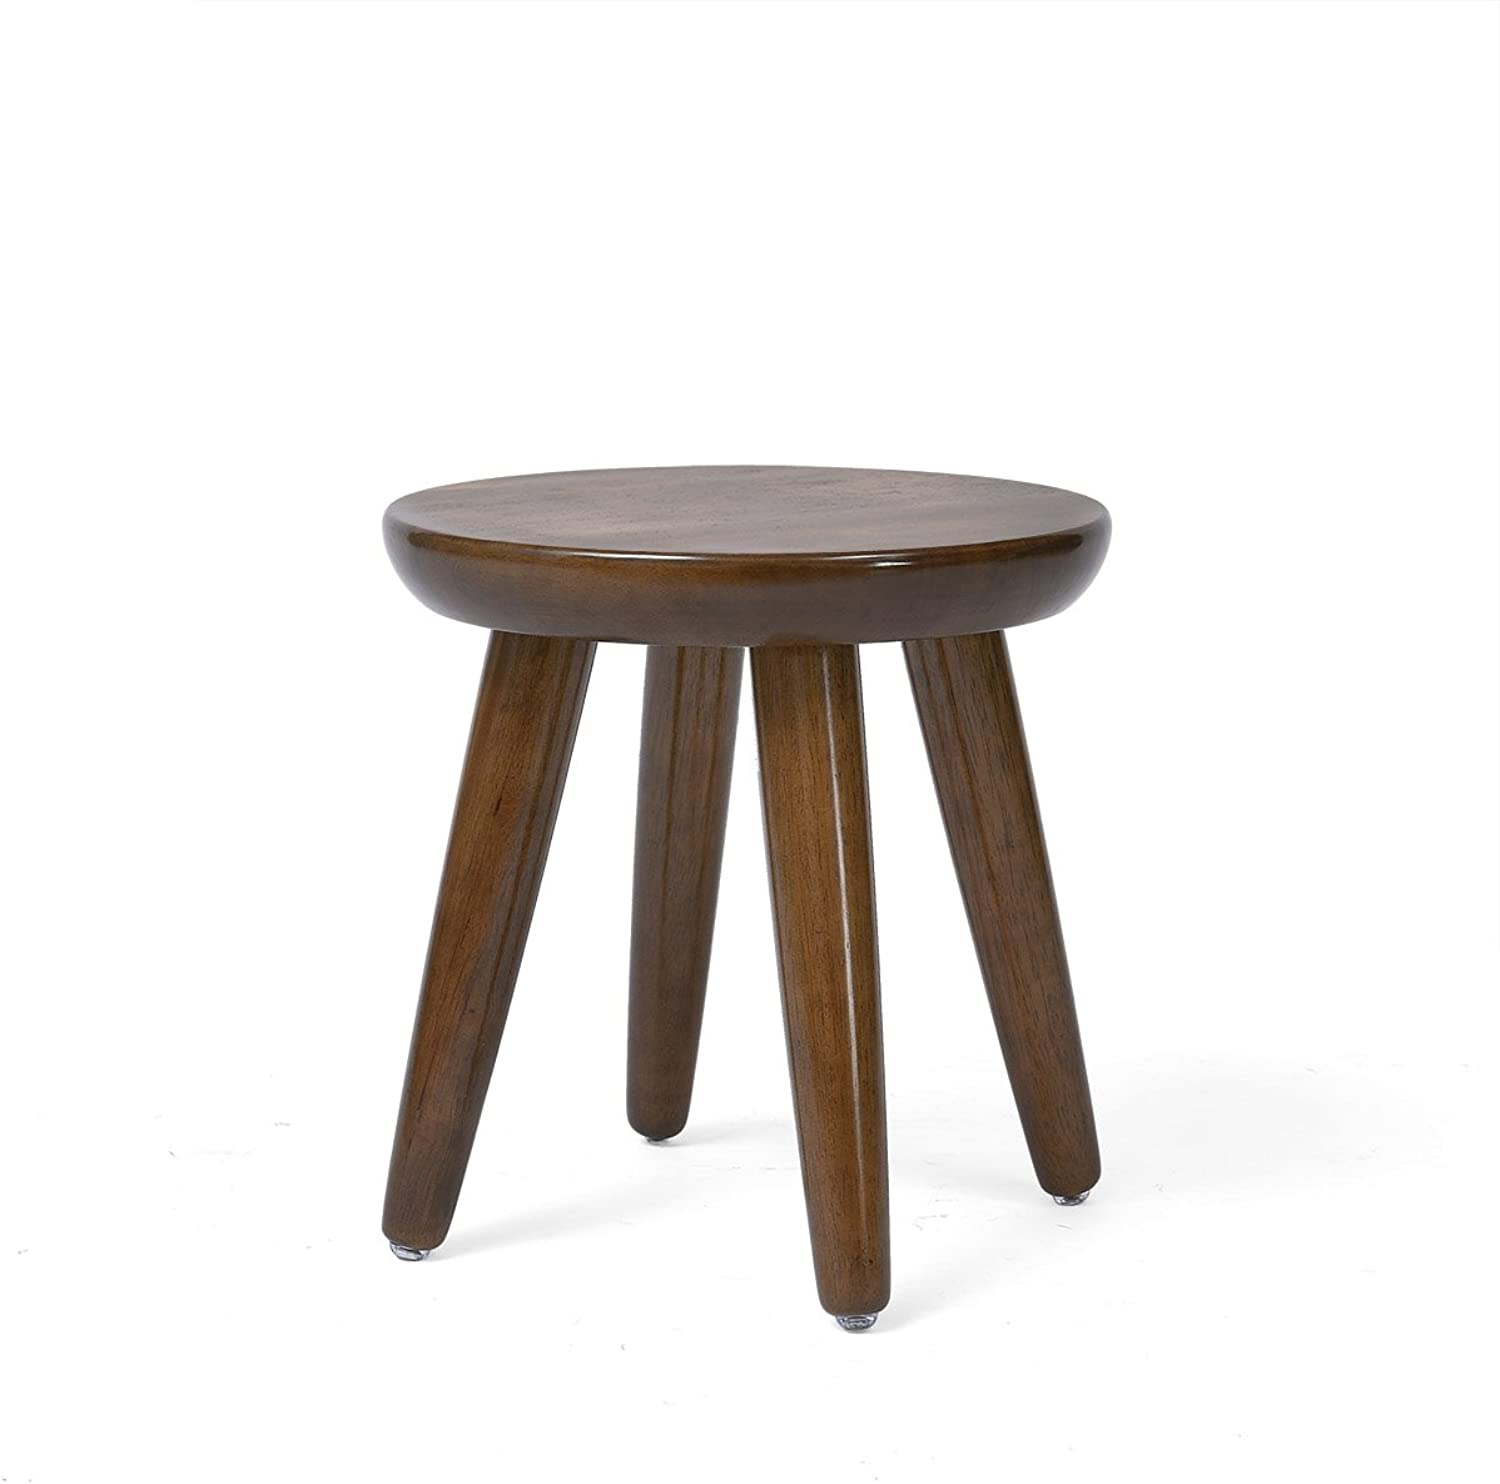 Solid Wood Stool Creative Round Stool Small Round Table Stool Stool Fashion Stool Stool Stool Stool Home Small Stool (color   2 , Size   A)